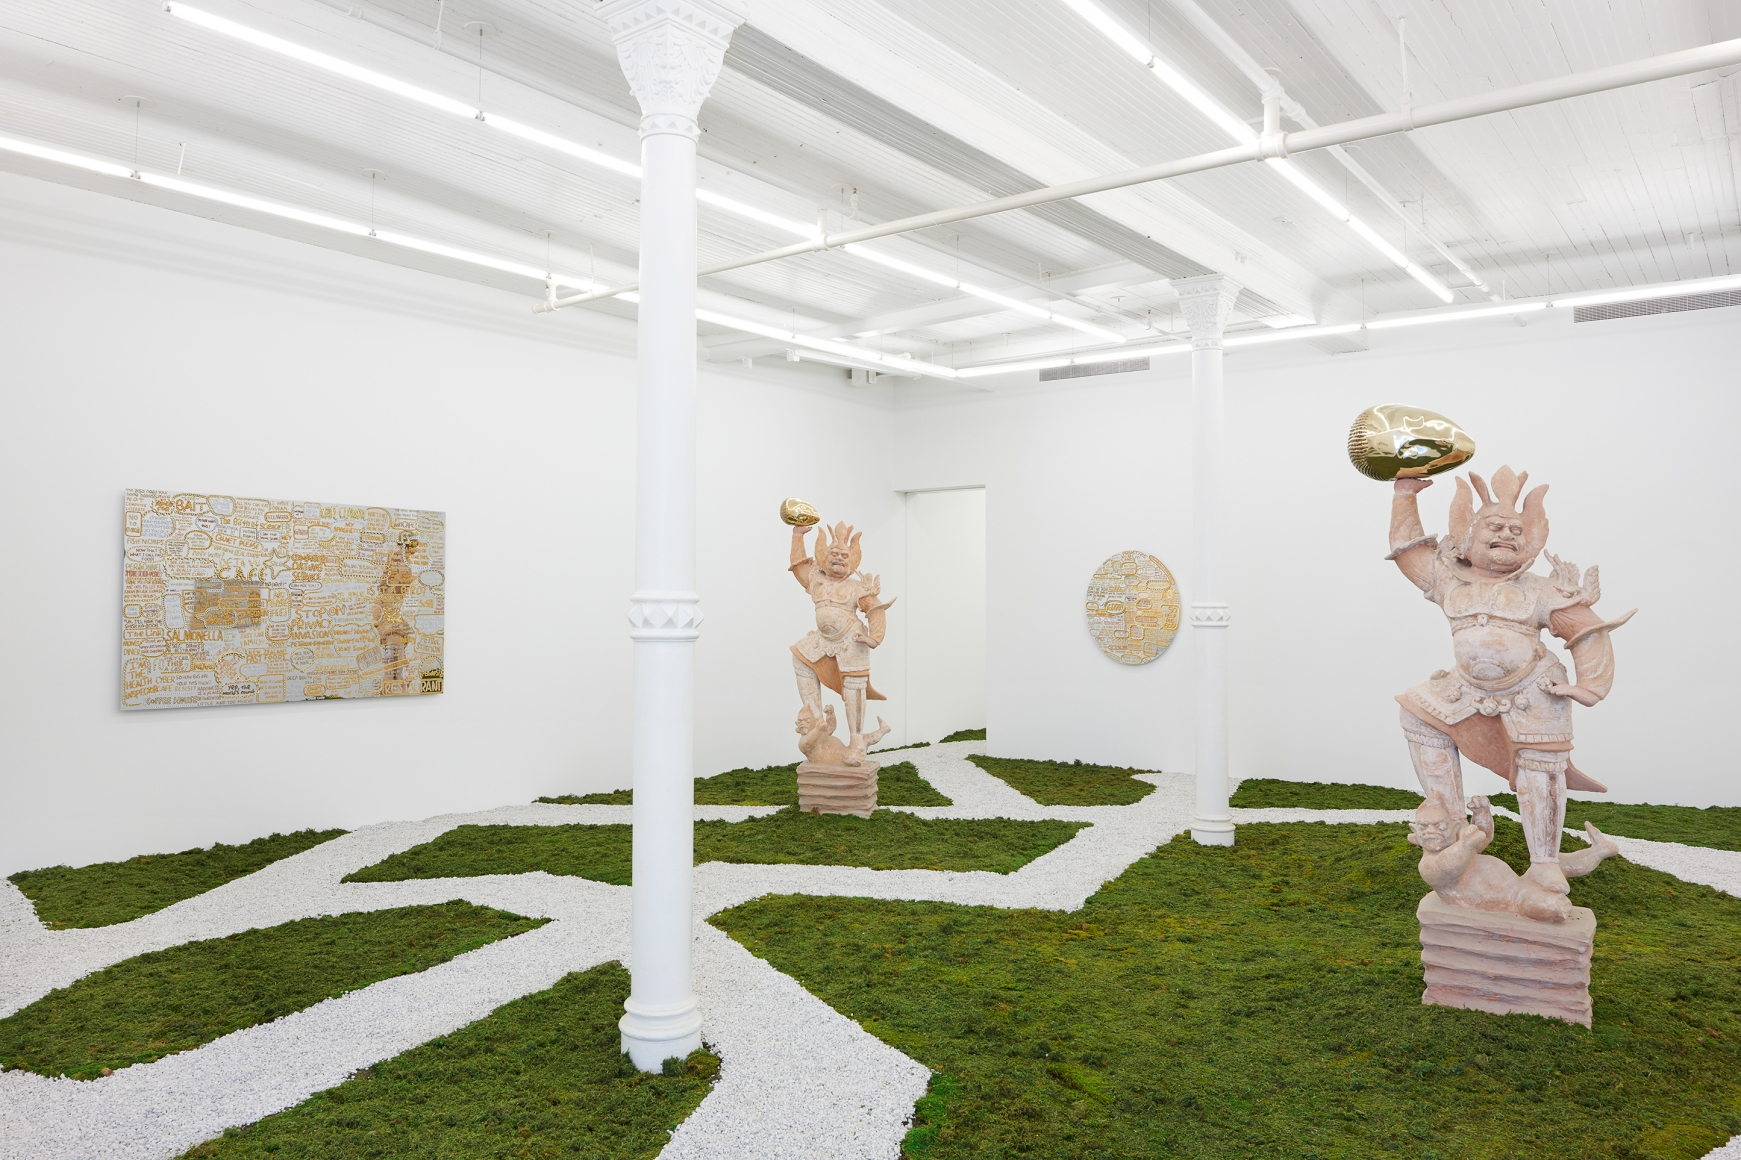 Xu Zhen: Movement Field